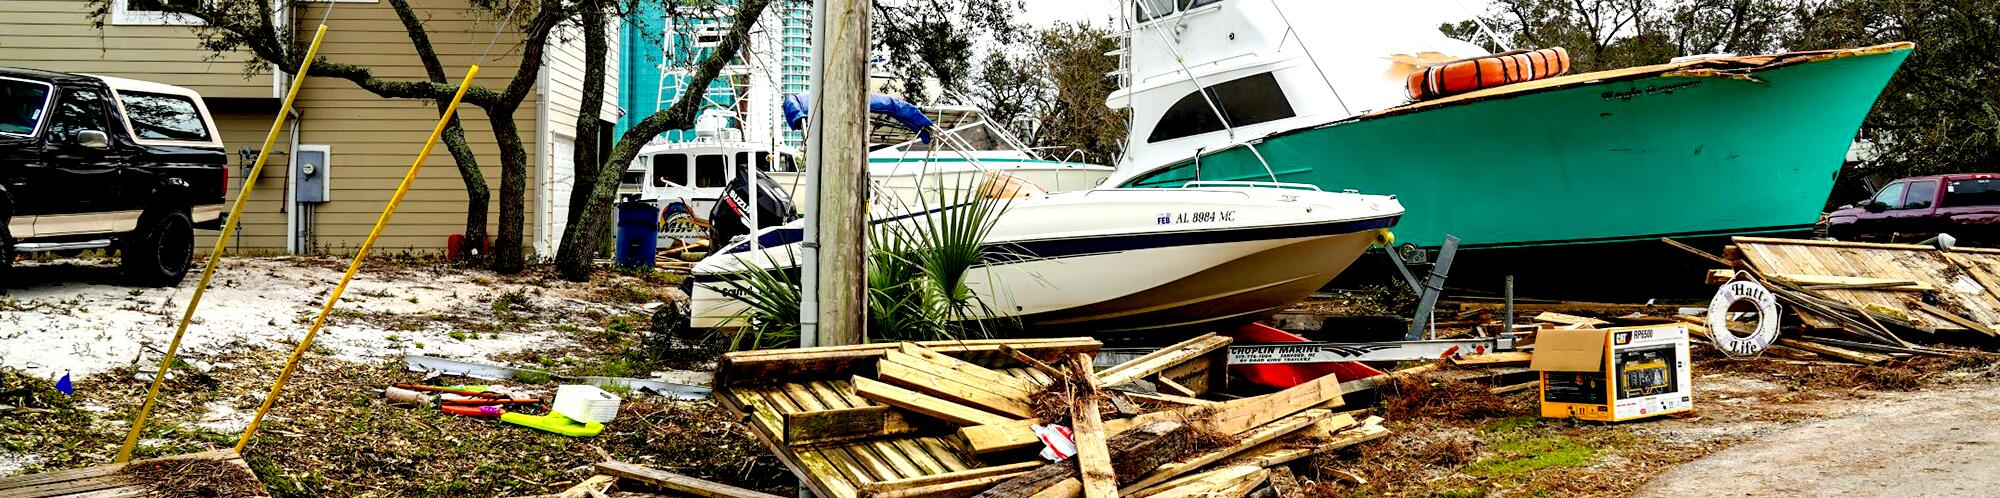 Two big boats beside a house with wood debris everywhere around it